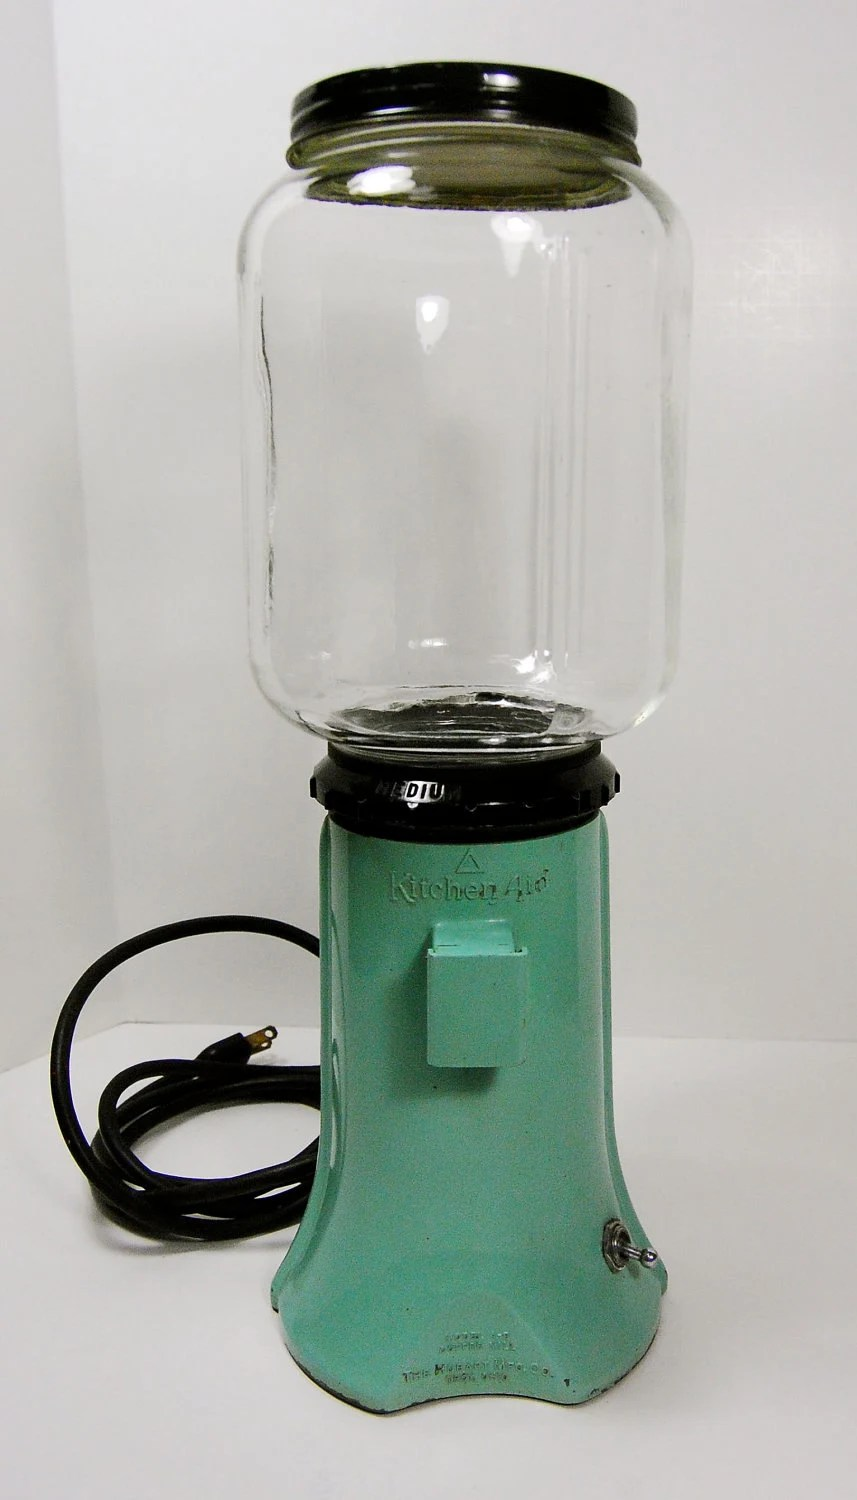 Kitchenaid A 9 Electric Burr Coffee Grinder By SharpmAntiques